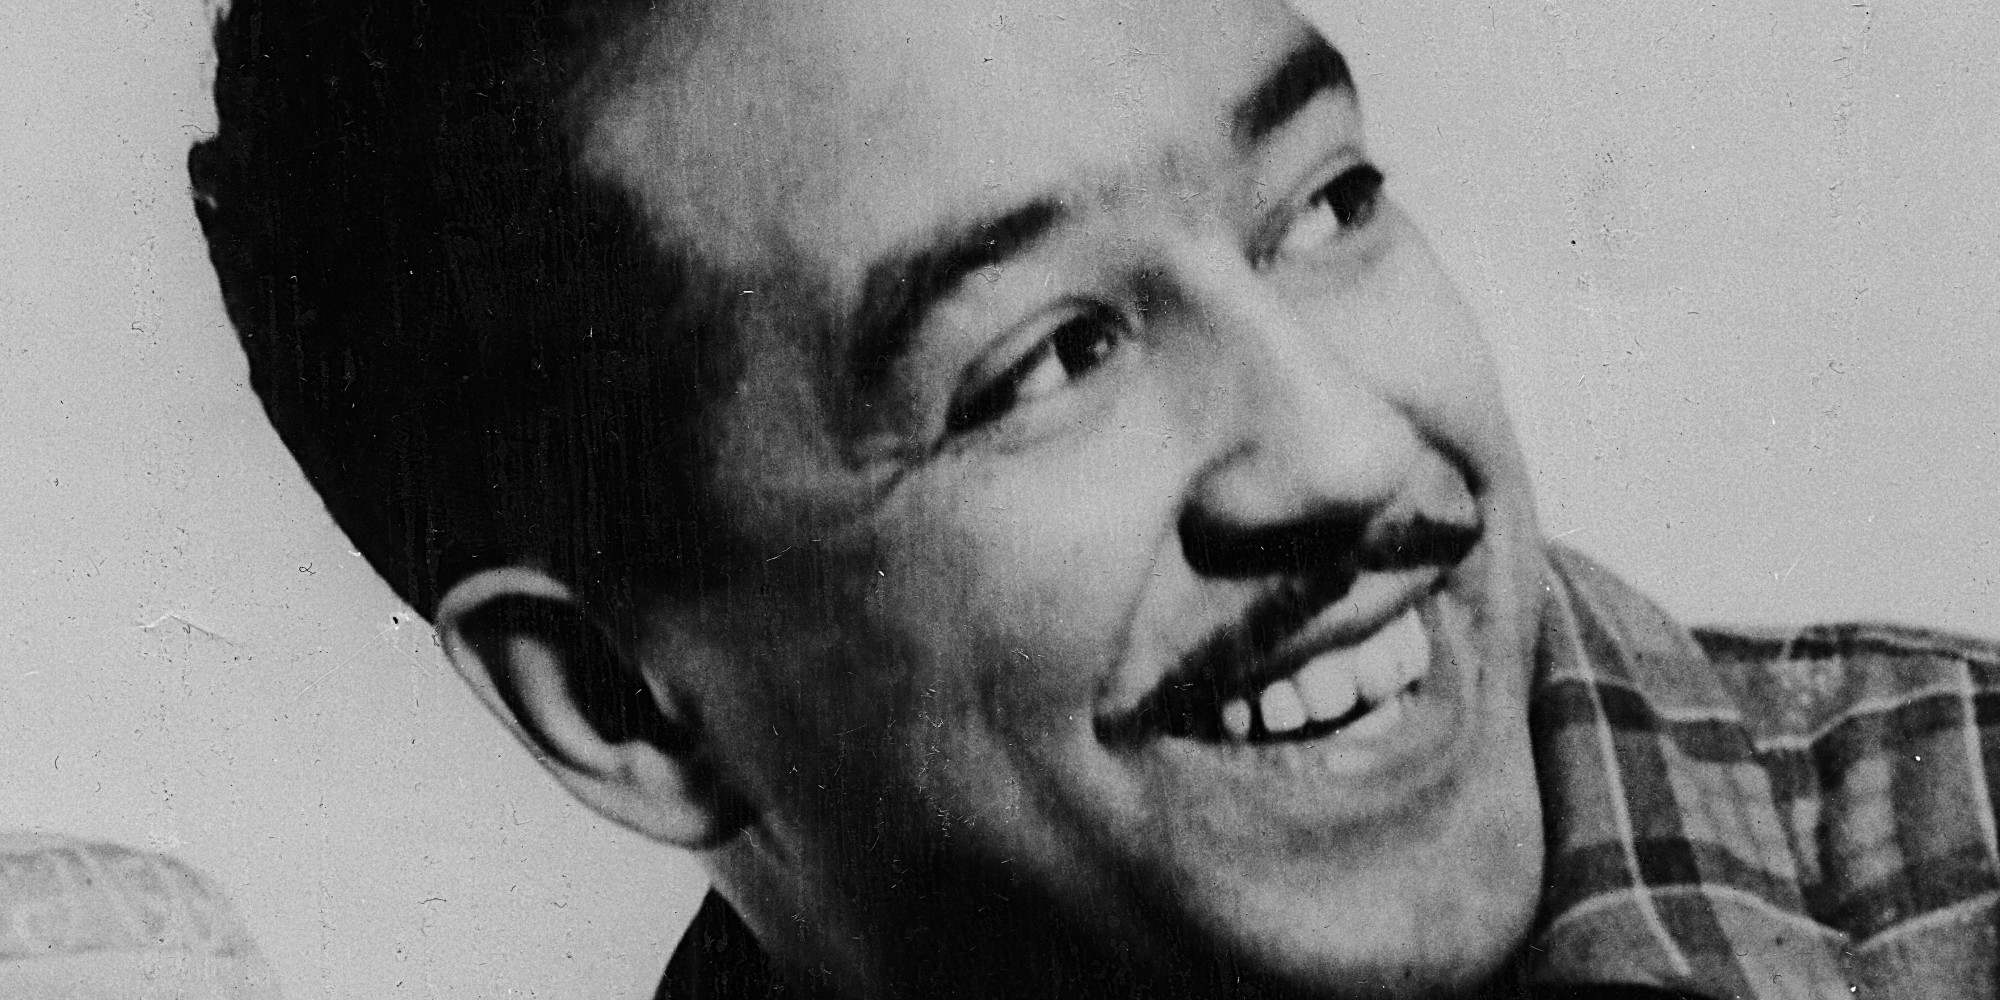 analysis on jazzonia bt langston hughes Langston hughes, champion of black causes, wrote this short, powerful poem questioning the delay or postponement of individual and collective dreams.